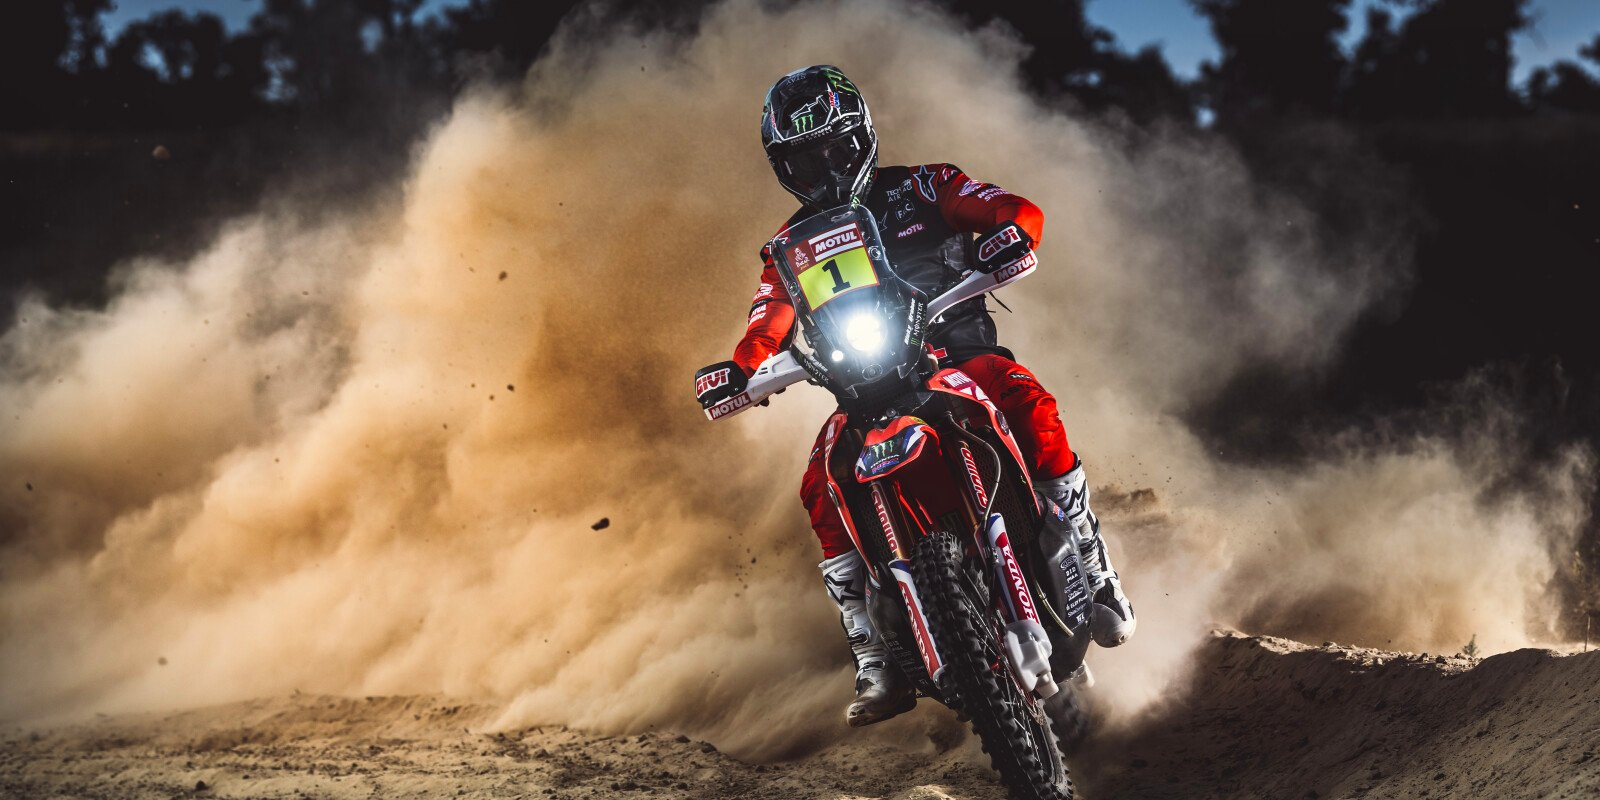 Exclusive team imagery of the 2020 / 2021 HRC Dakar Team